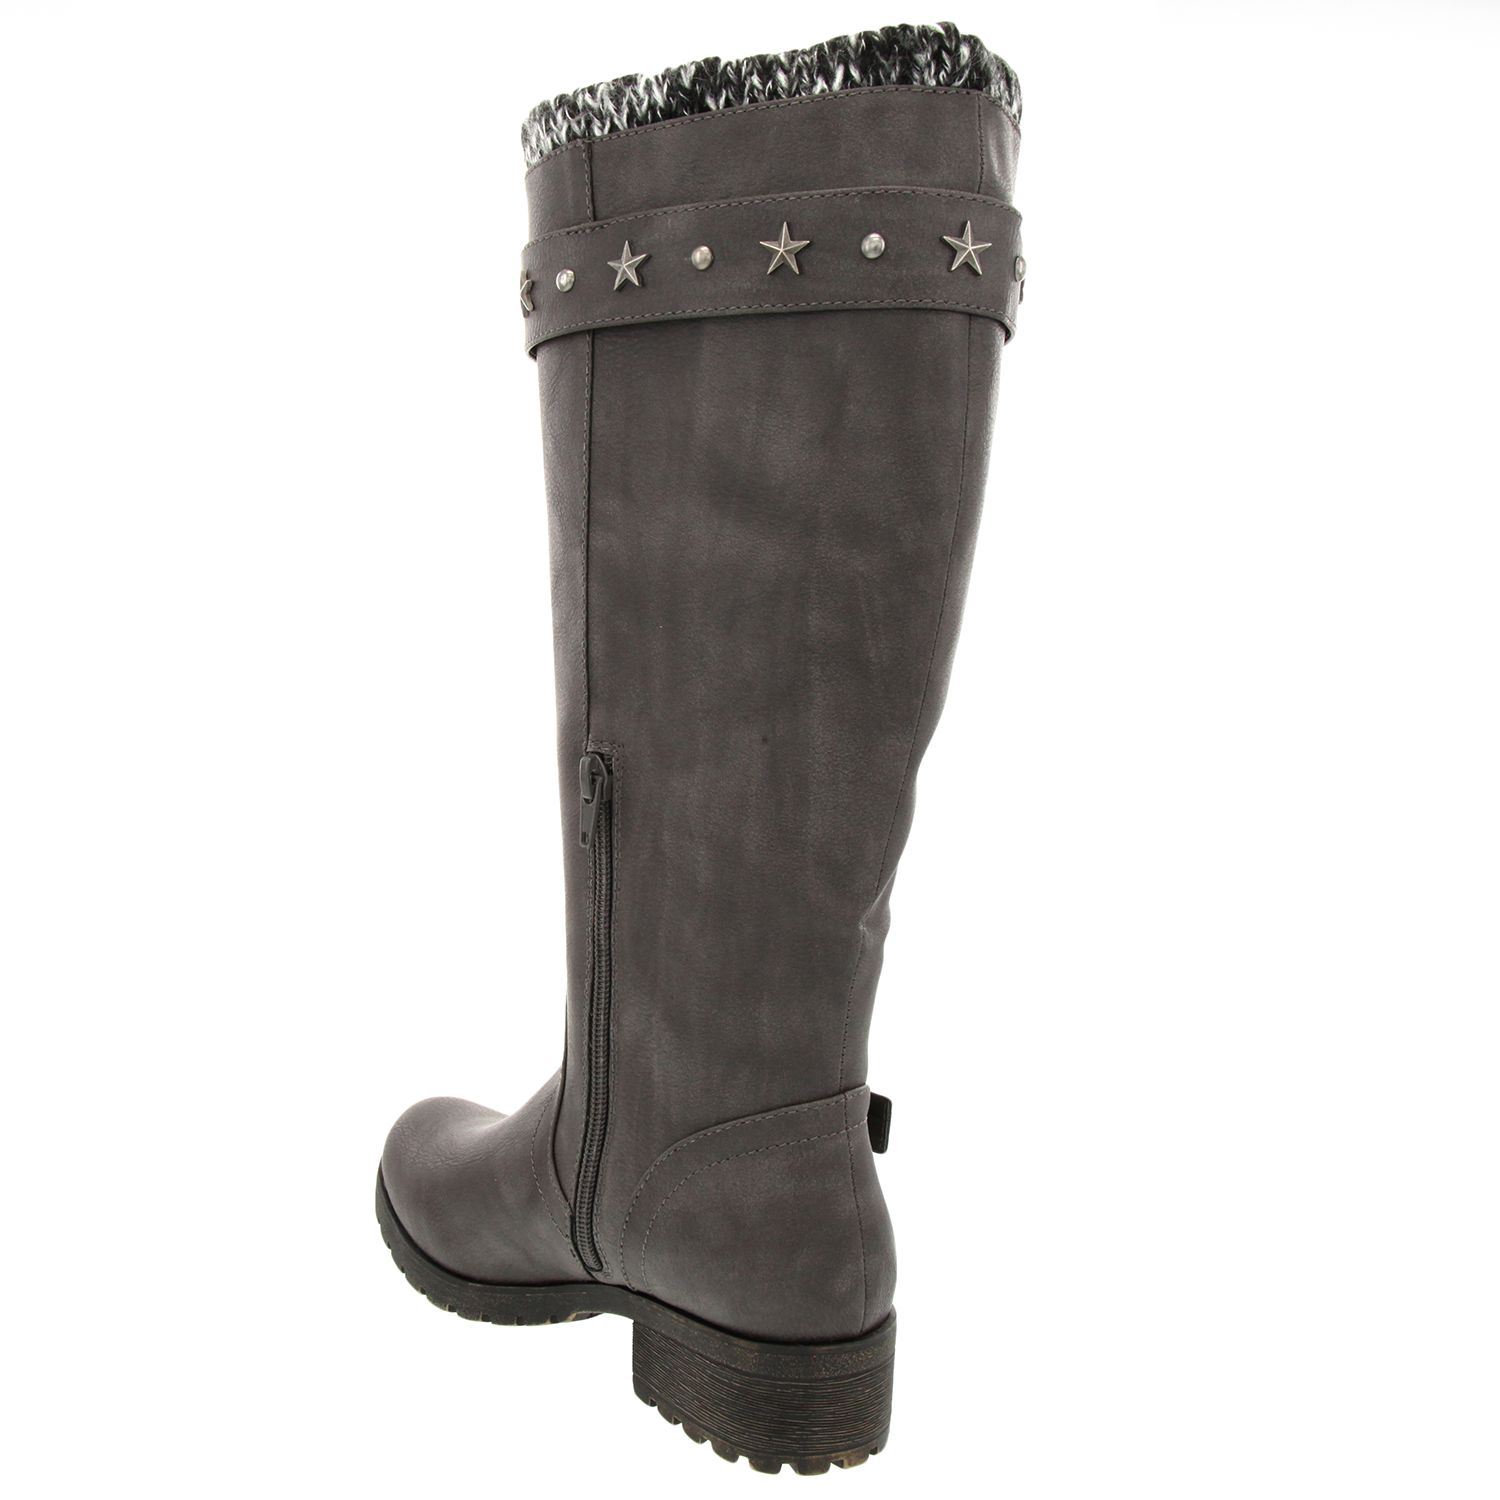 c2ed2e2316b Black Sugar Boots - Shoes